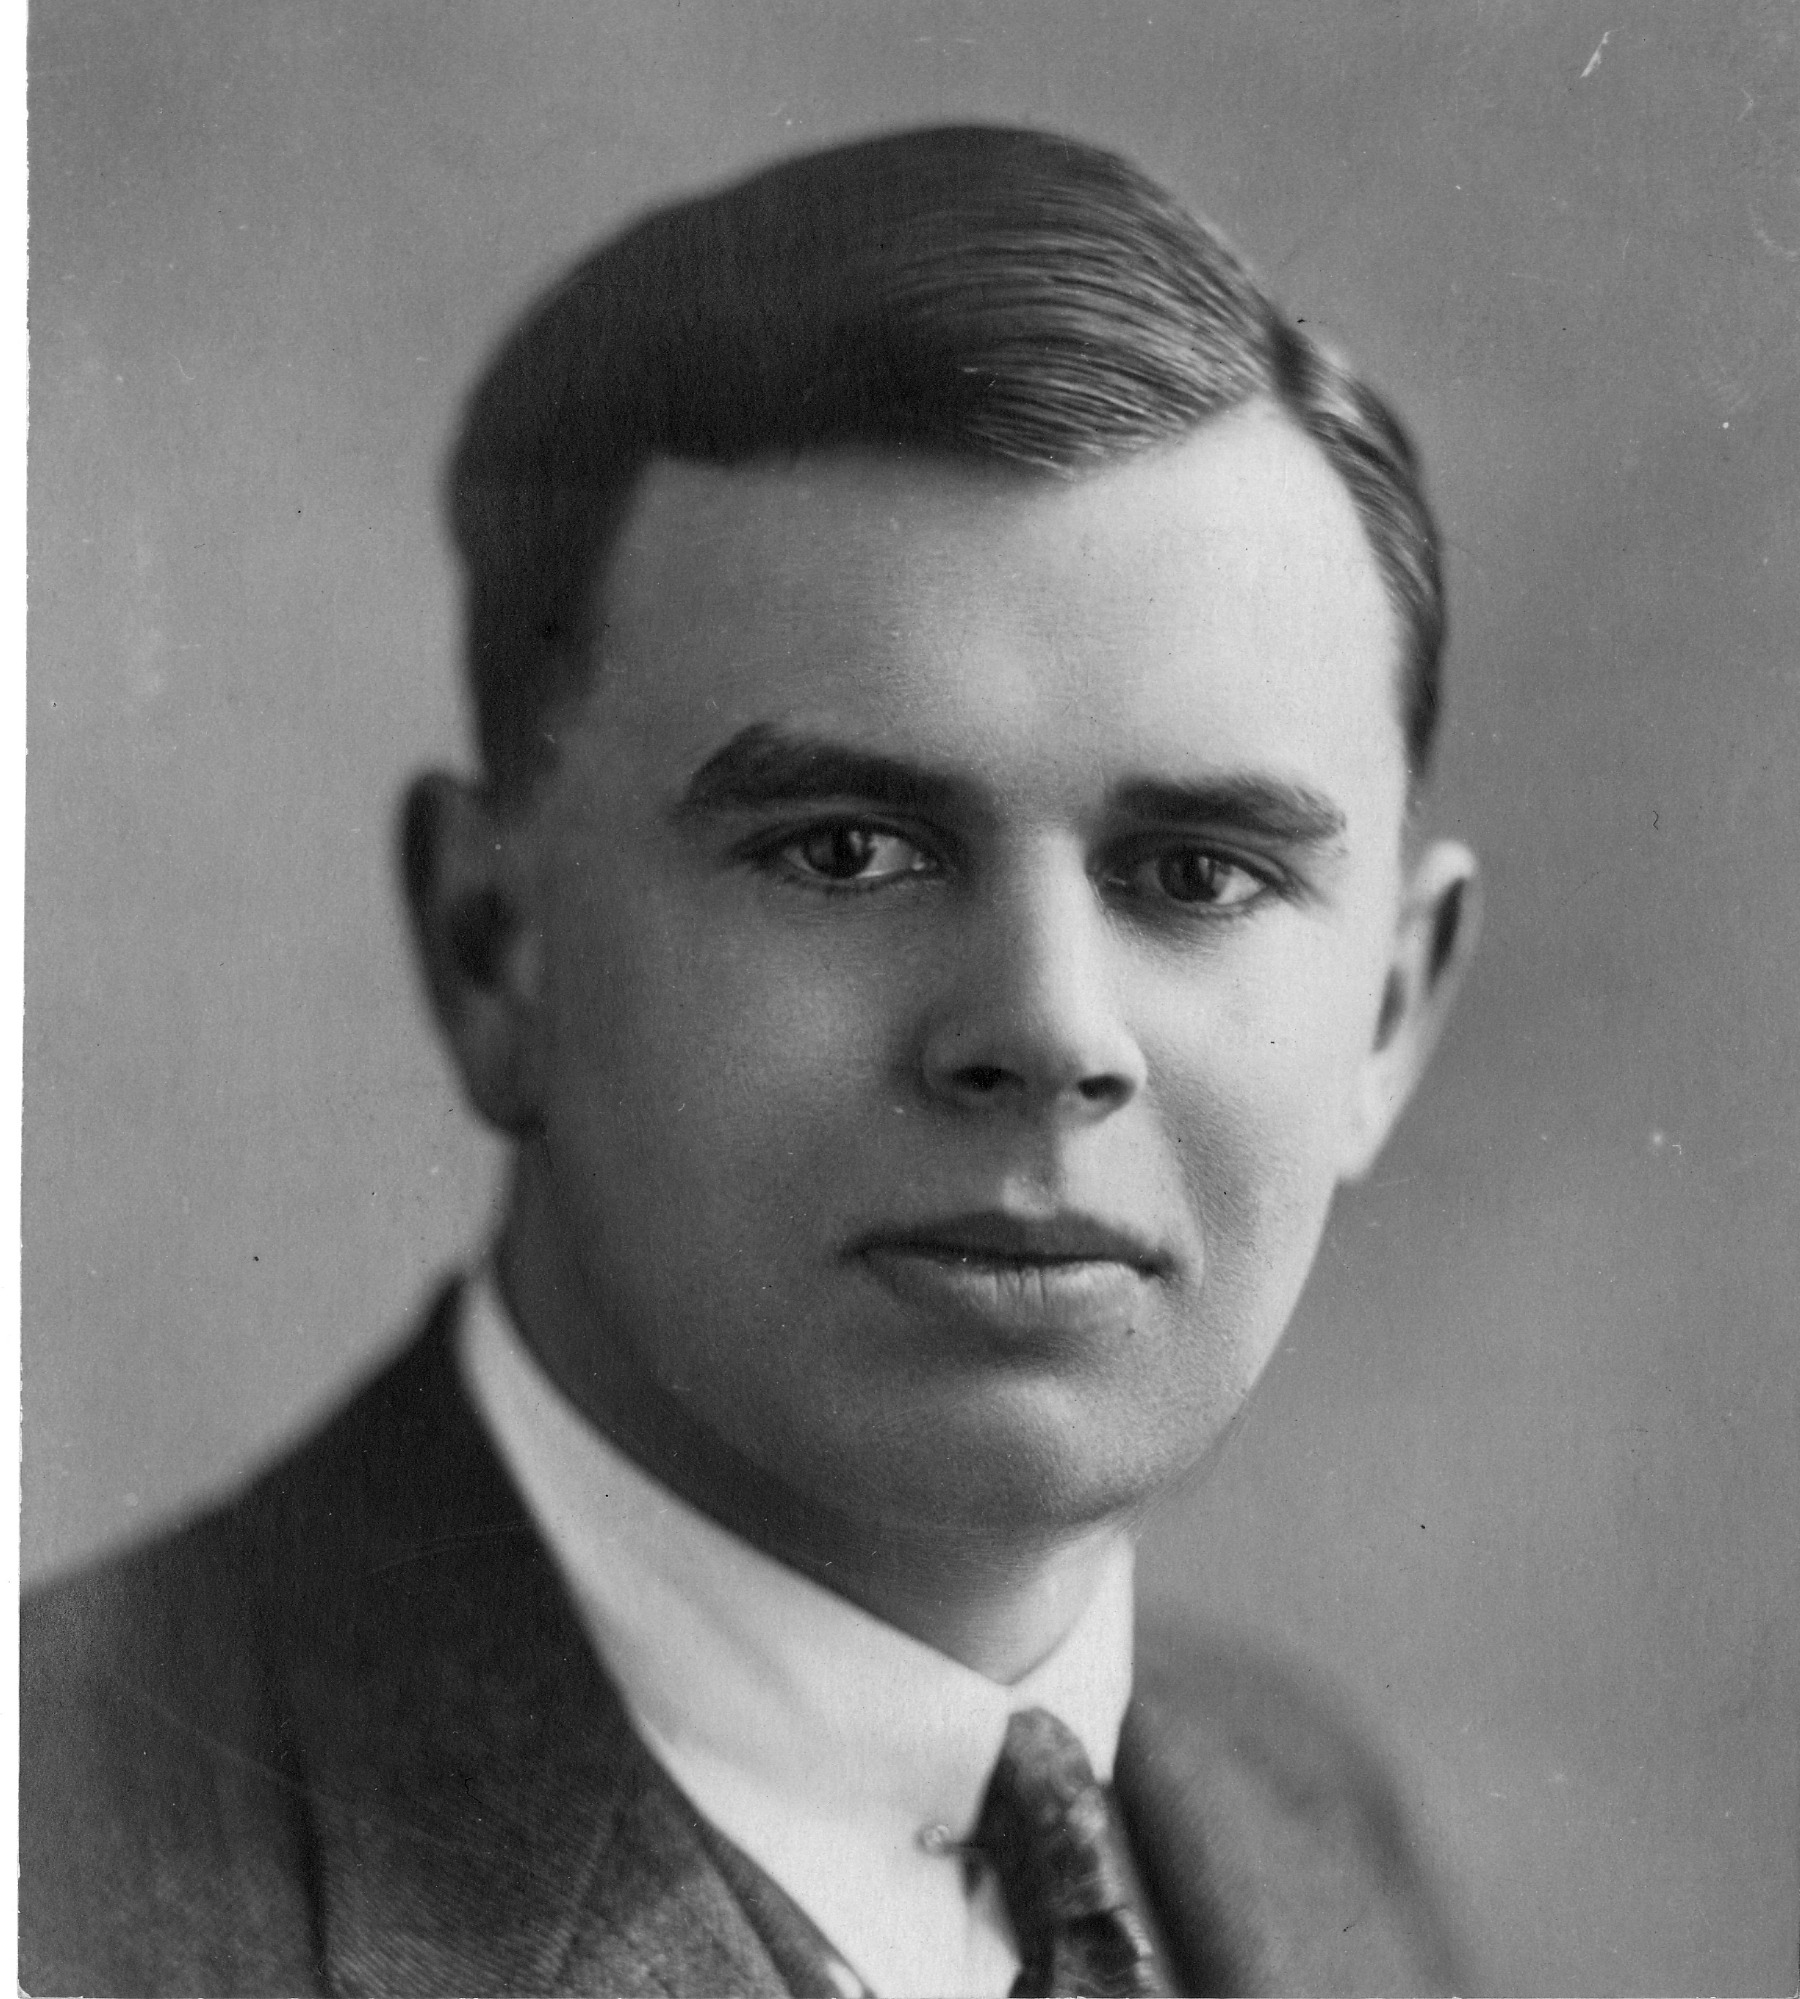 Donald Caley, 1935, Smithsonian Institution Archives, SIA Acc. 90-105 [SIA2008-0258].